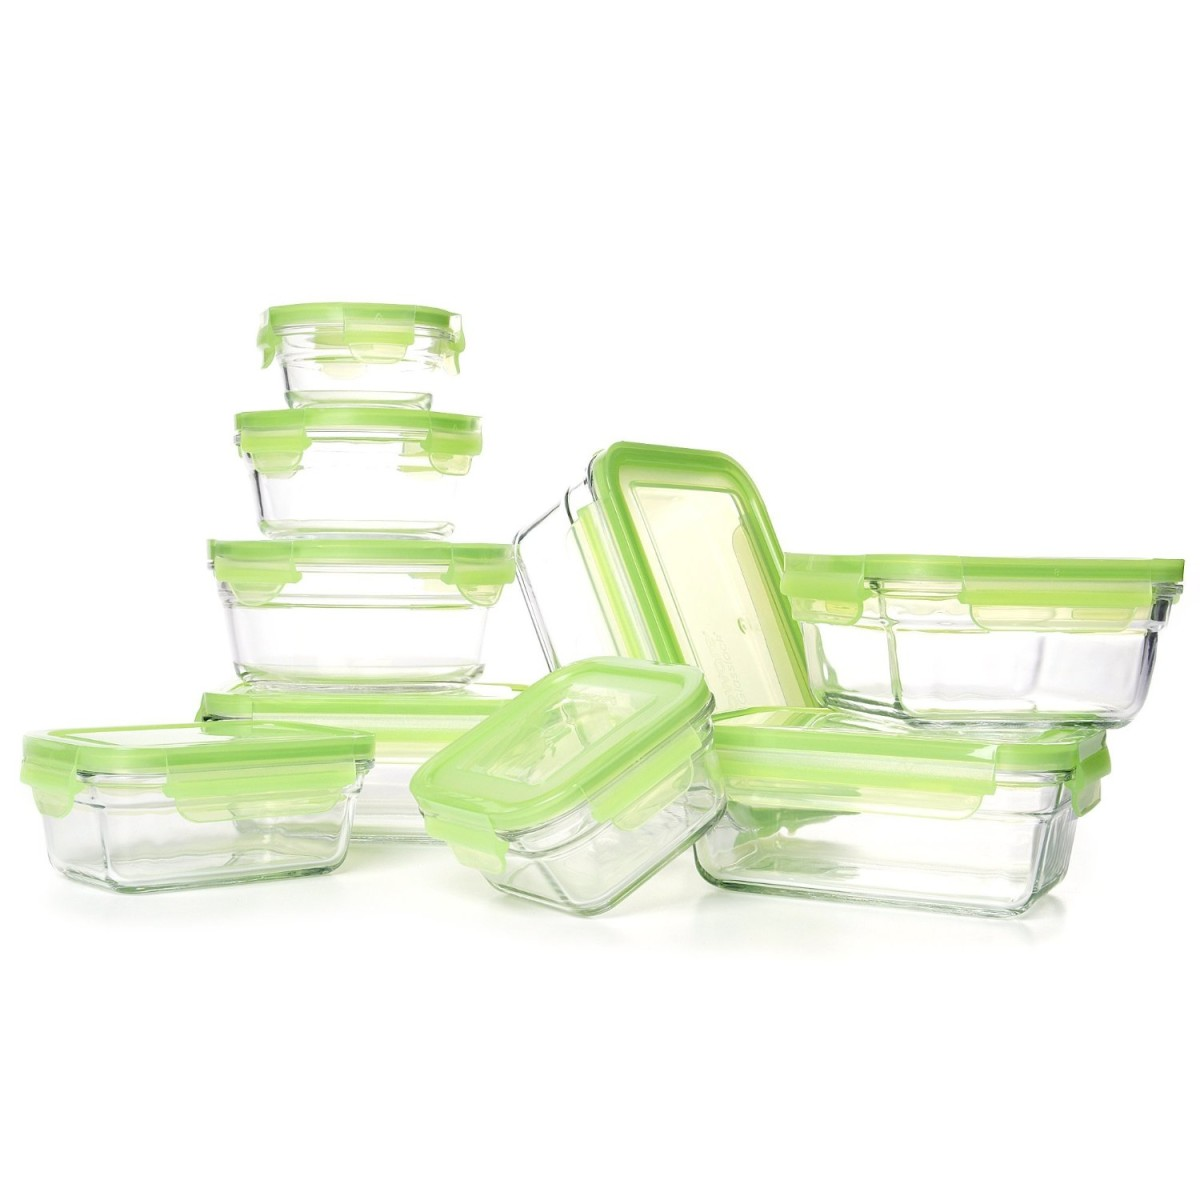 Amazon Gold Box Deal 07 26 Glasslock Snapware Tempered Glass Food Storage Containers With